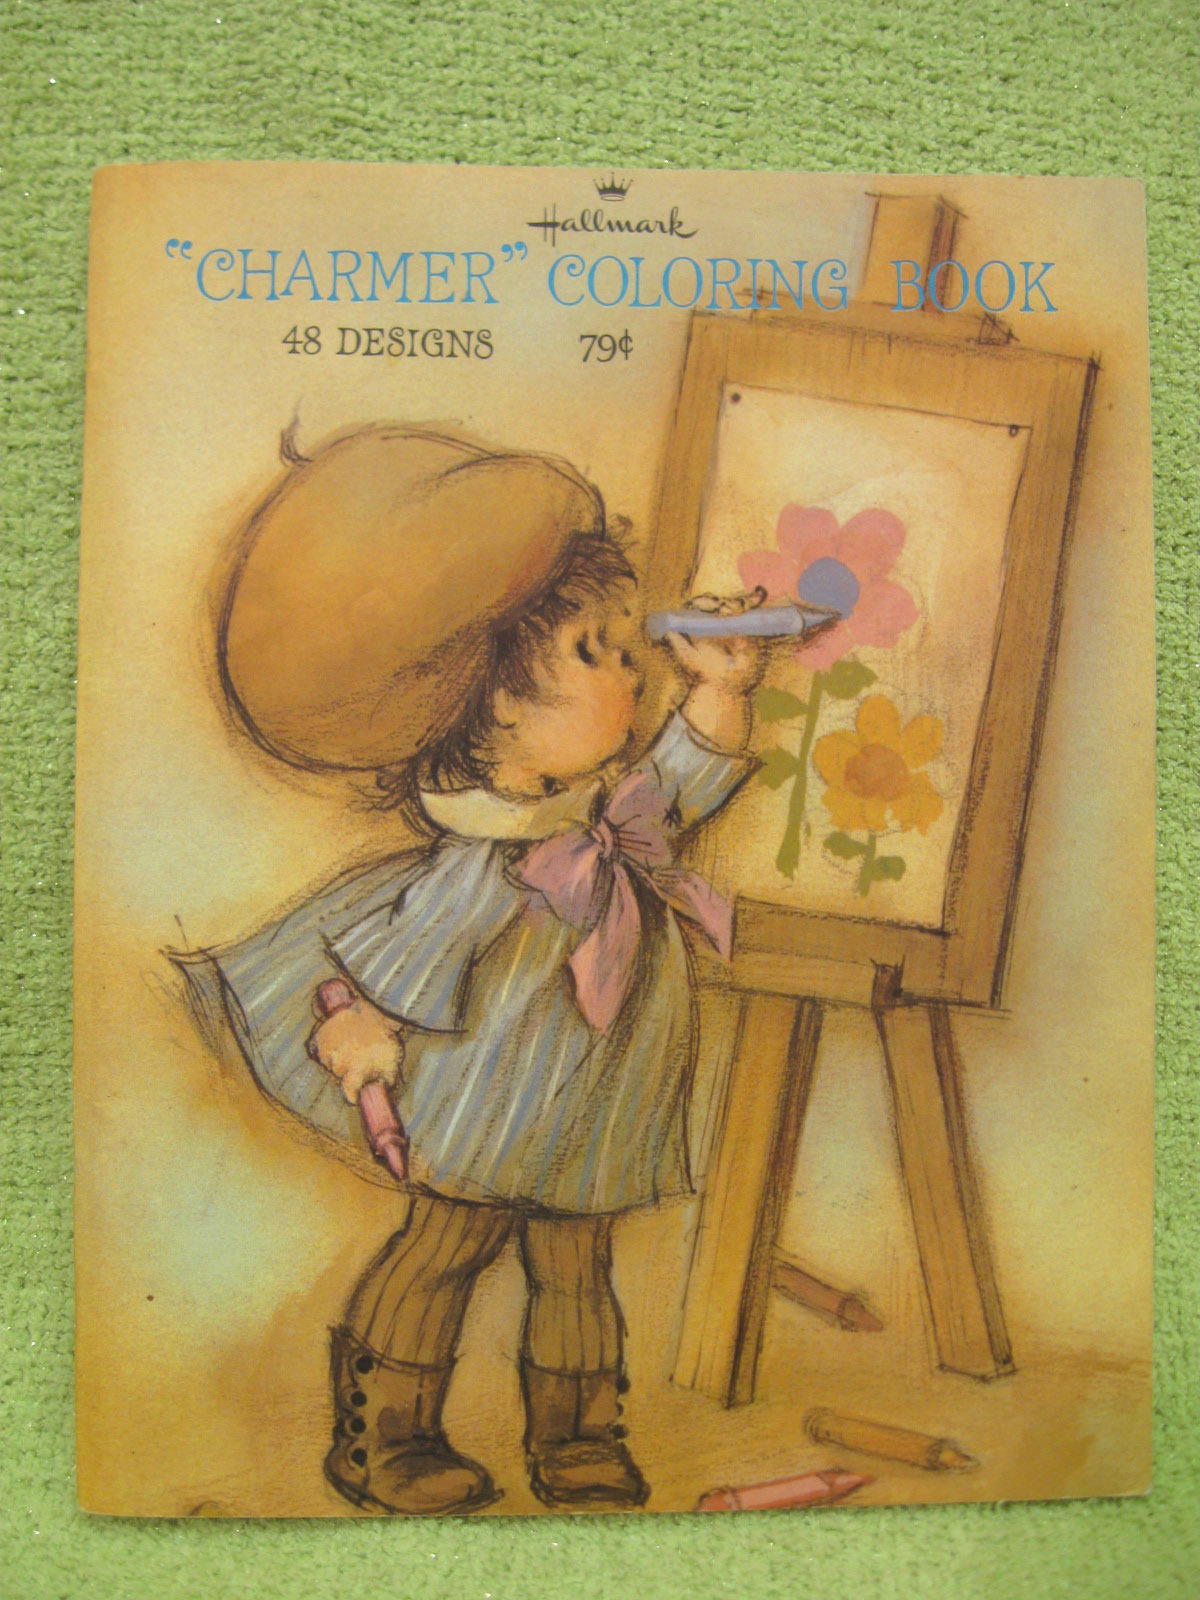 Hallmark Charmers Coloring Book 48 Designs And 36 Similar Items Img 2469